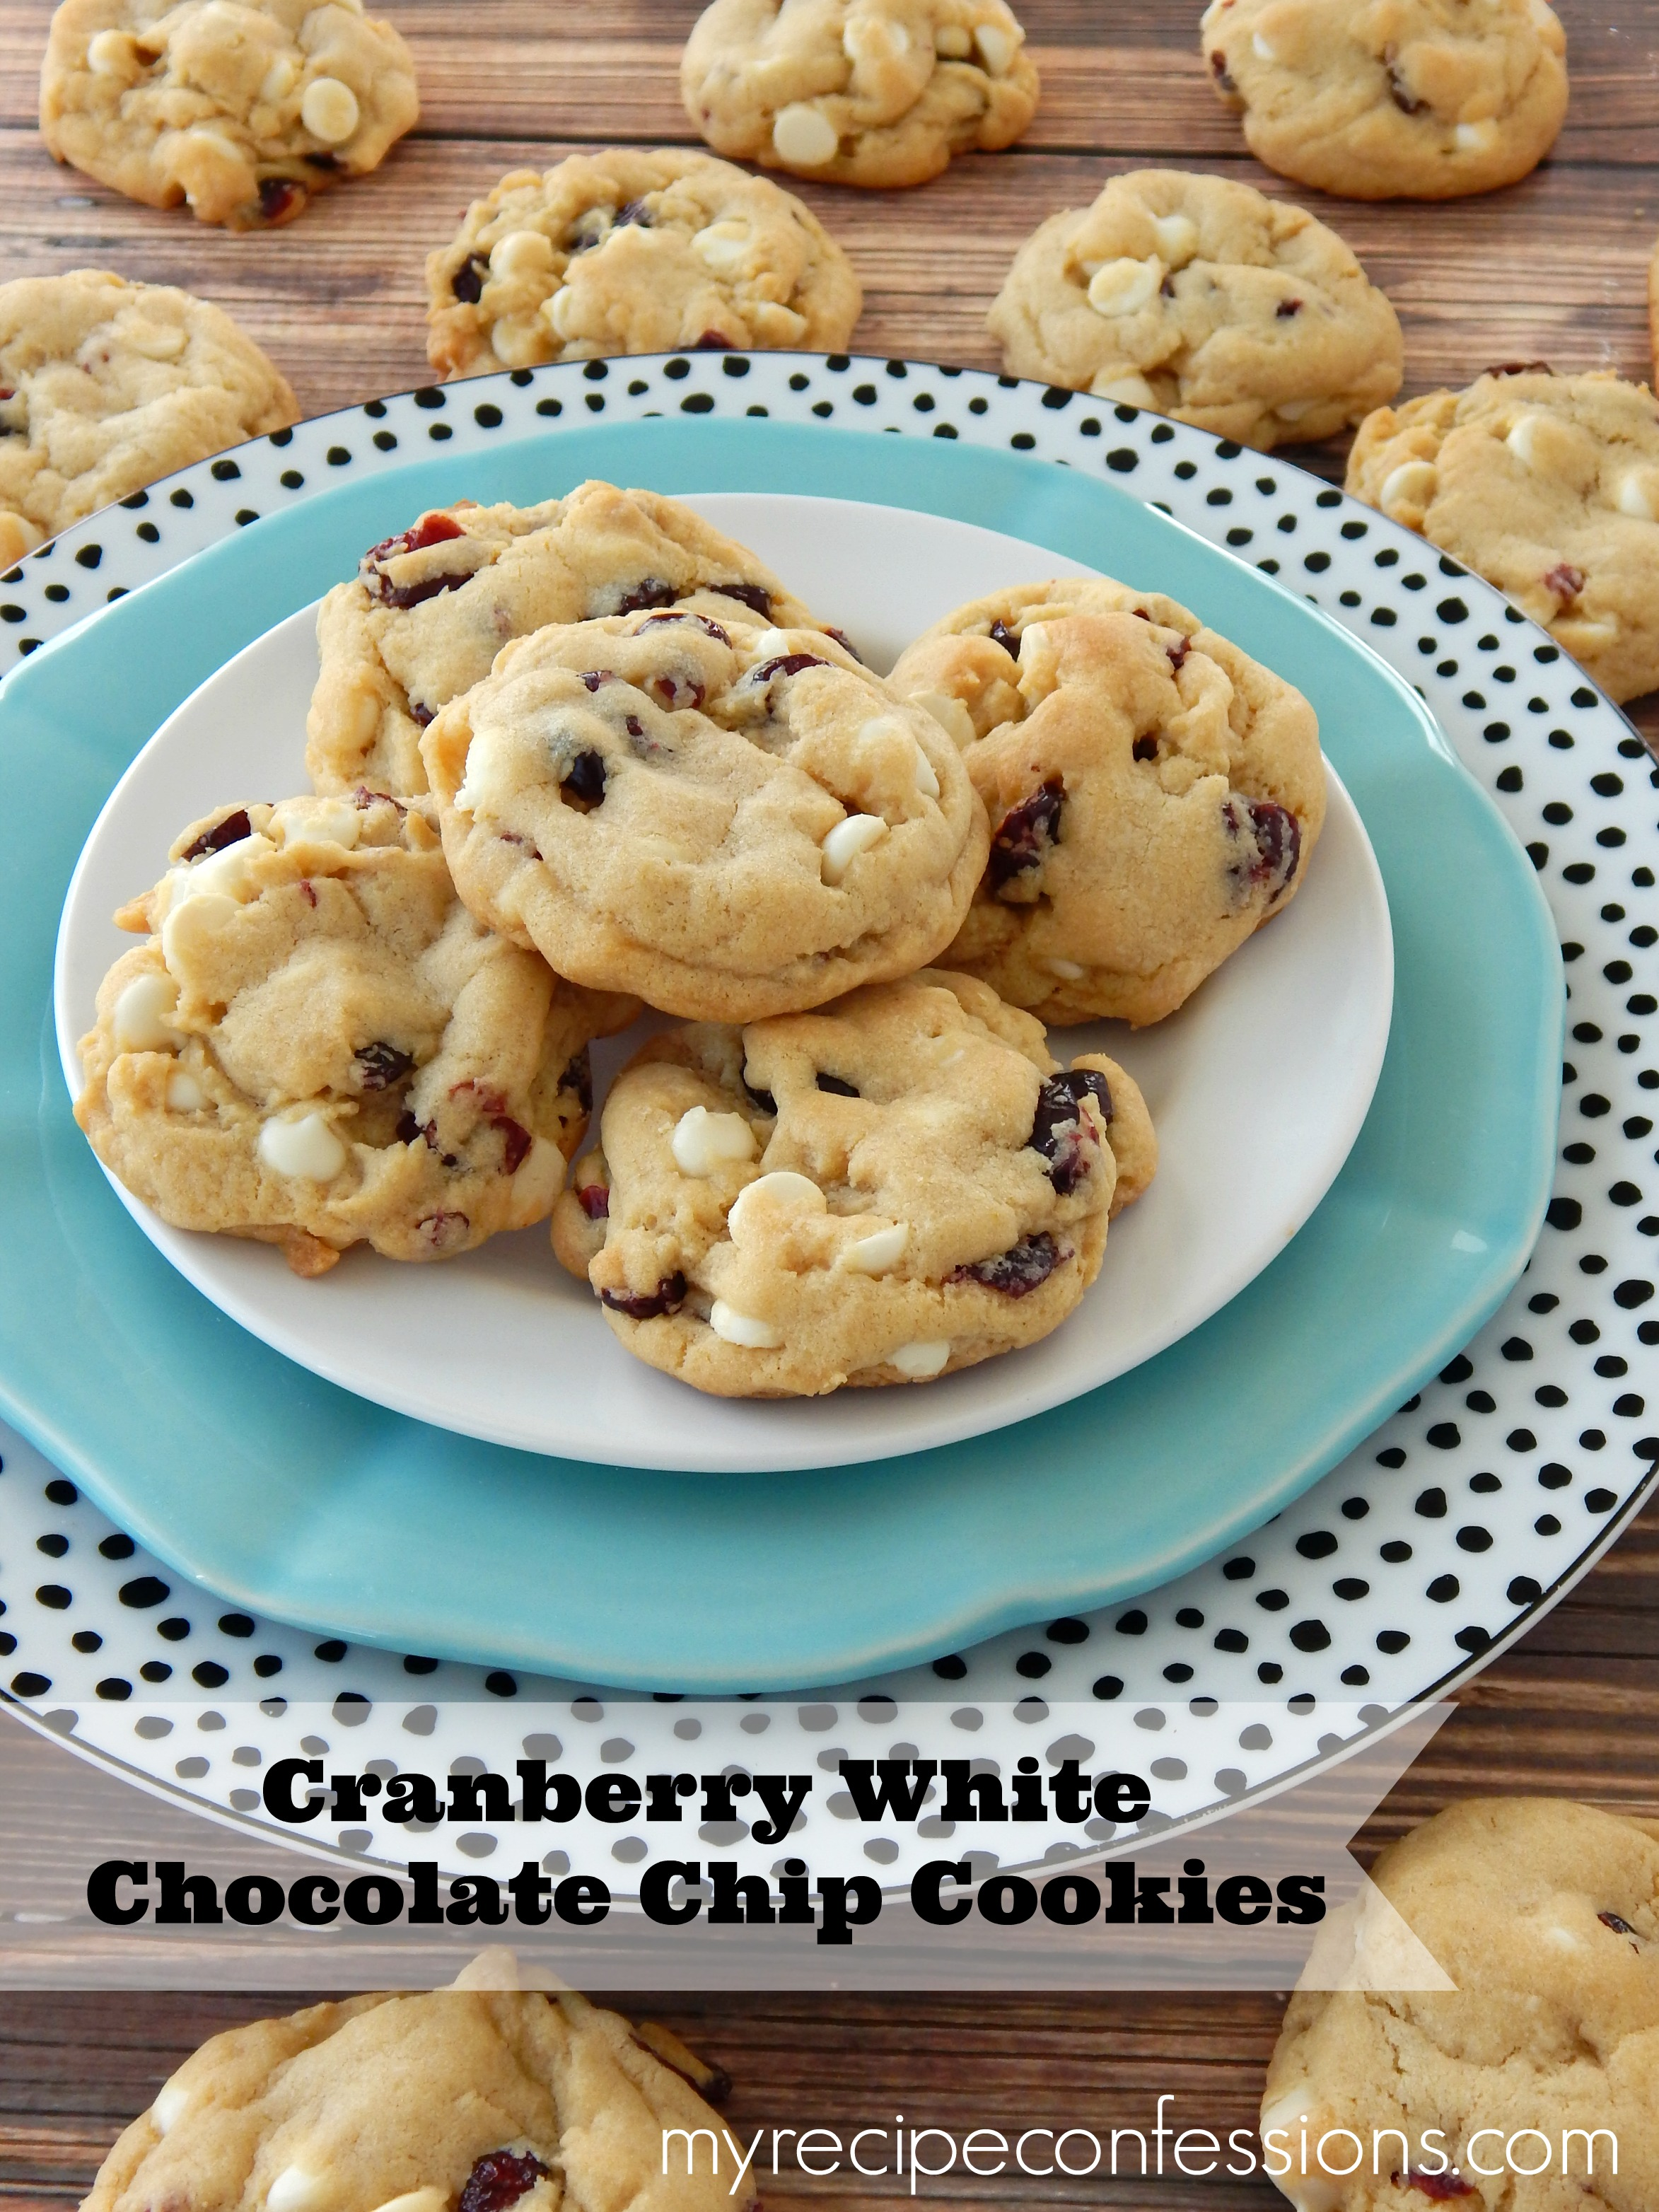 Cranberry White Chocolate Chip Cookies - My Recipe Confessions